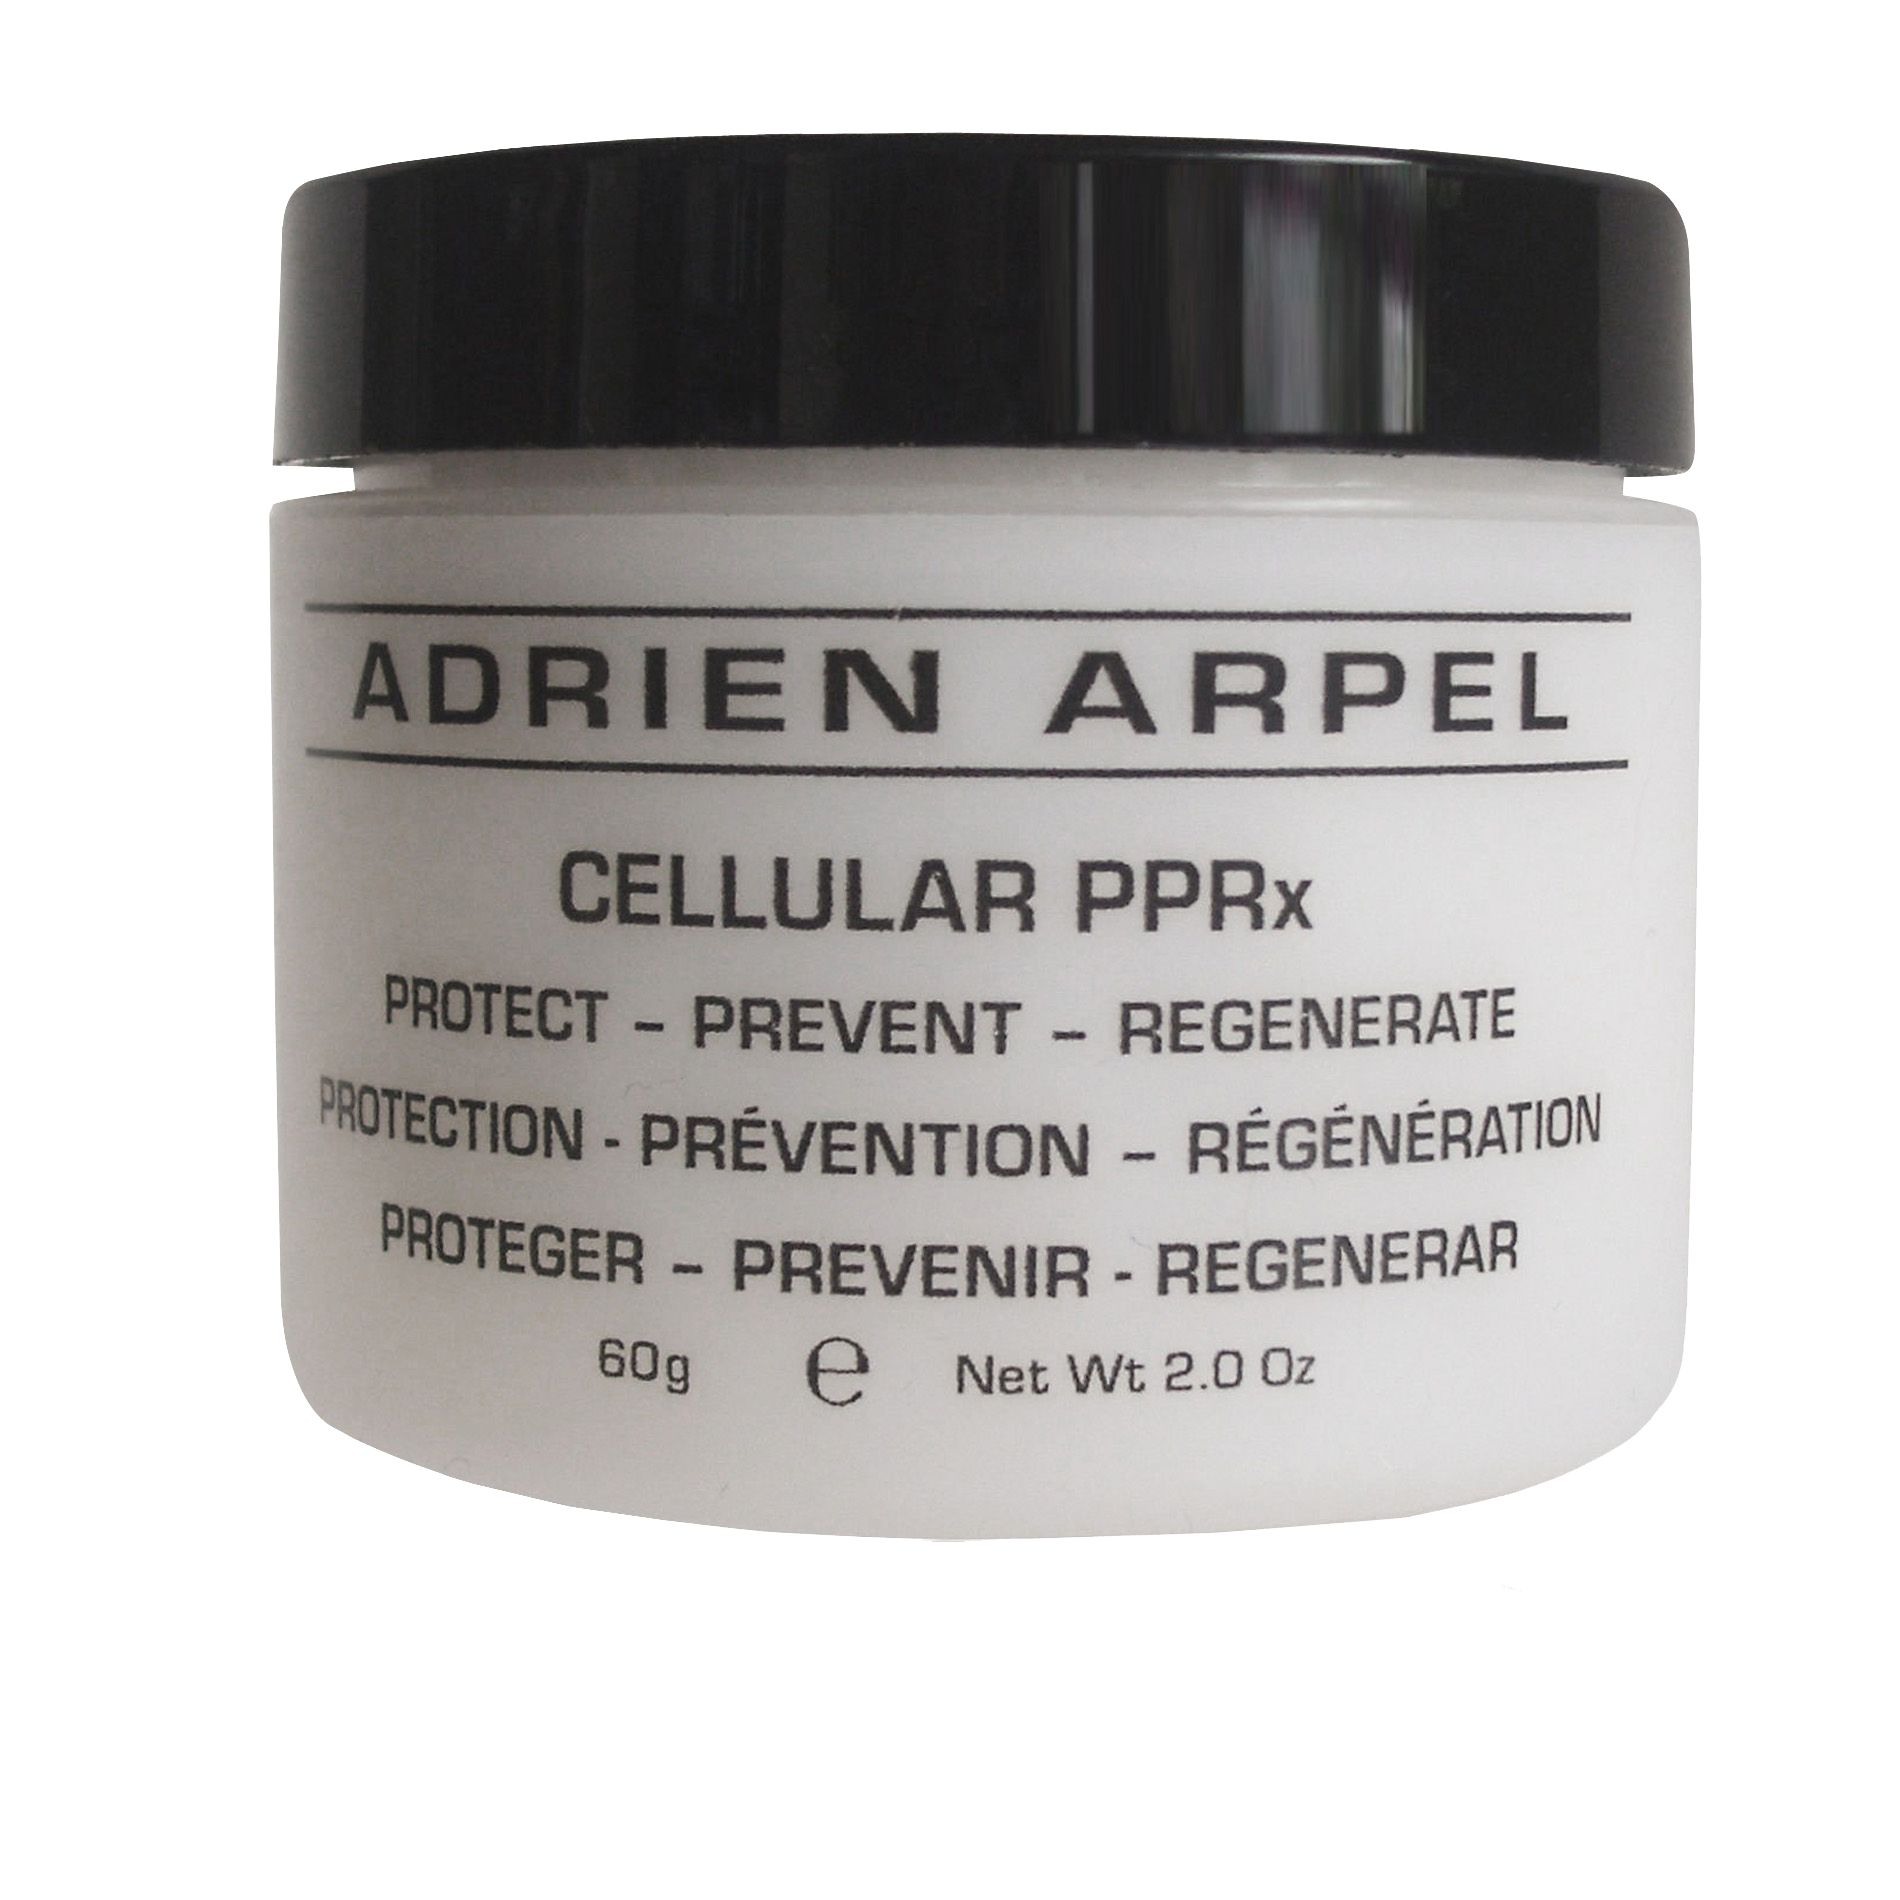 'Adrien Arpel Cellular PPRx